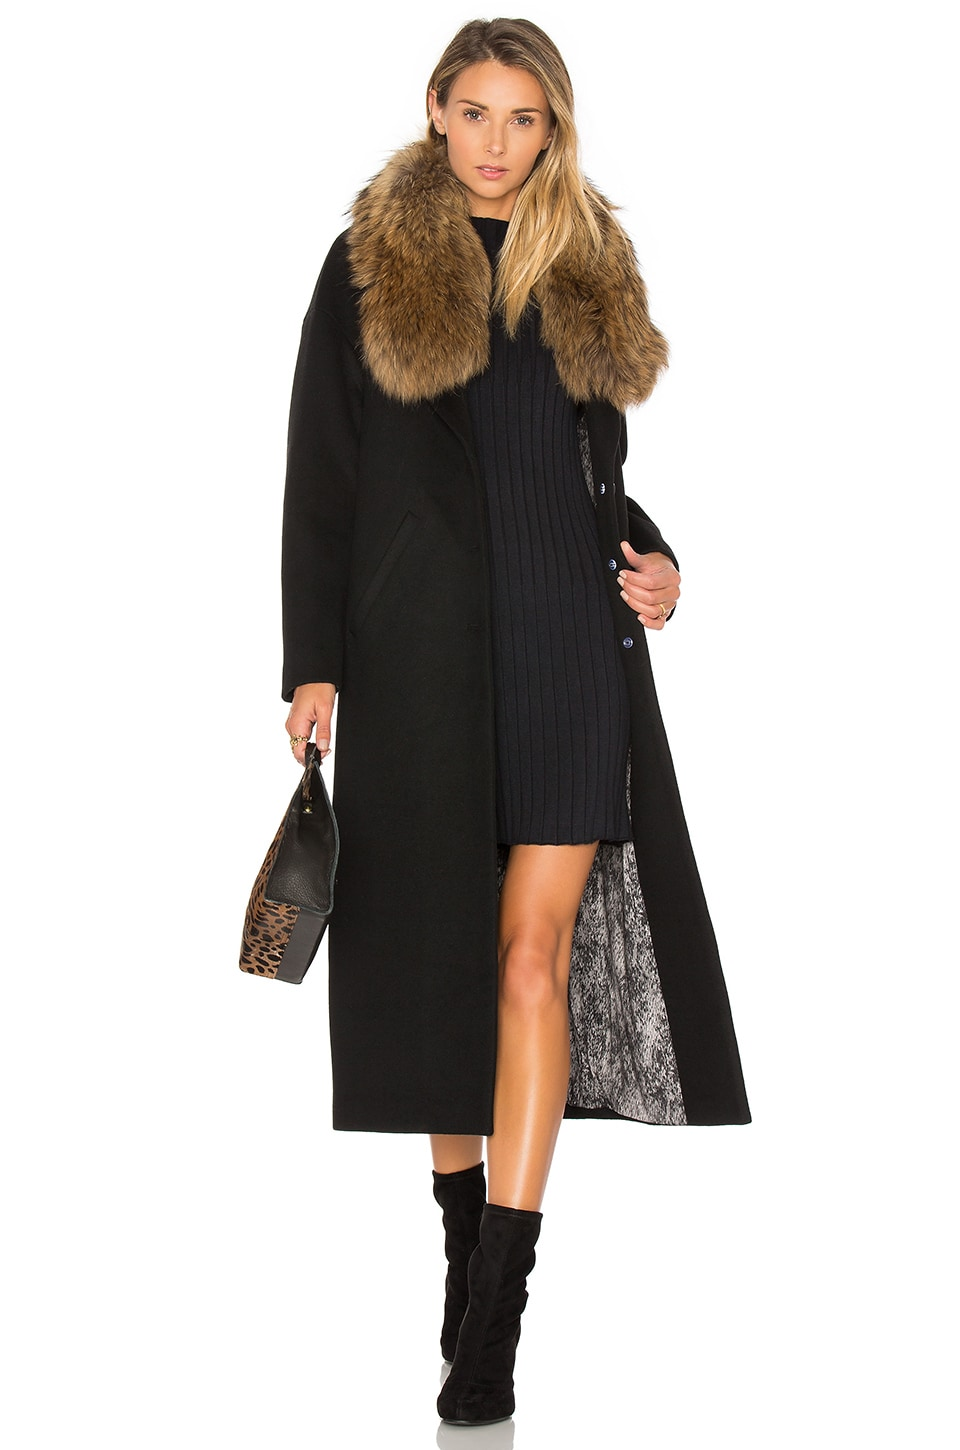 Soia & Kyo Chanelle Coat with Asiatic Raccoon Fur Trim in Black